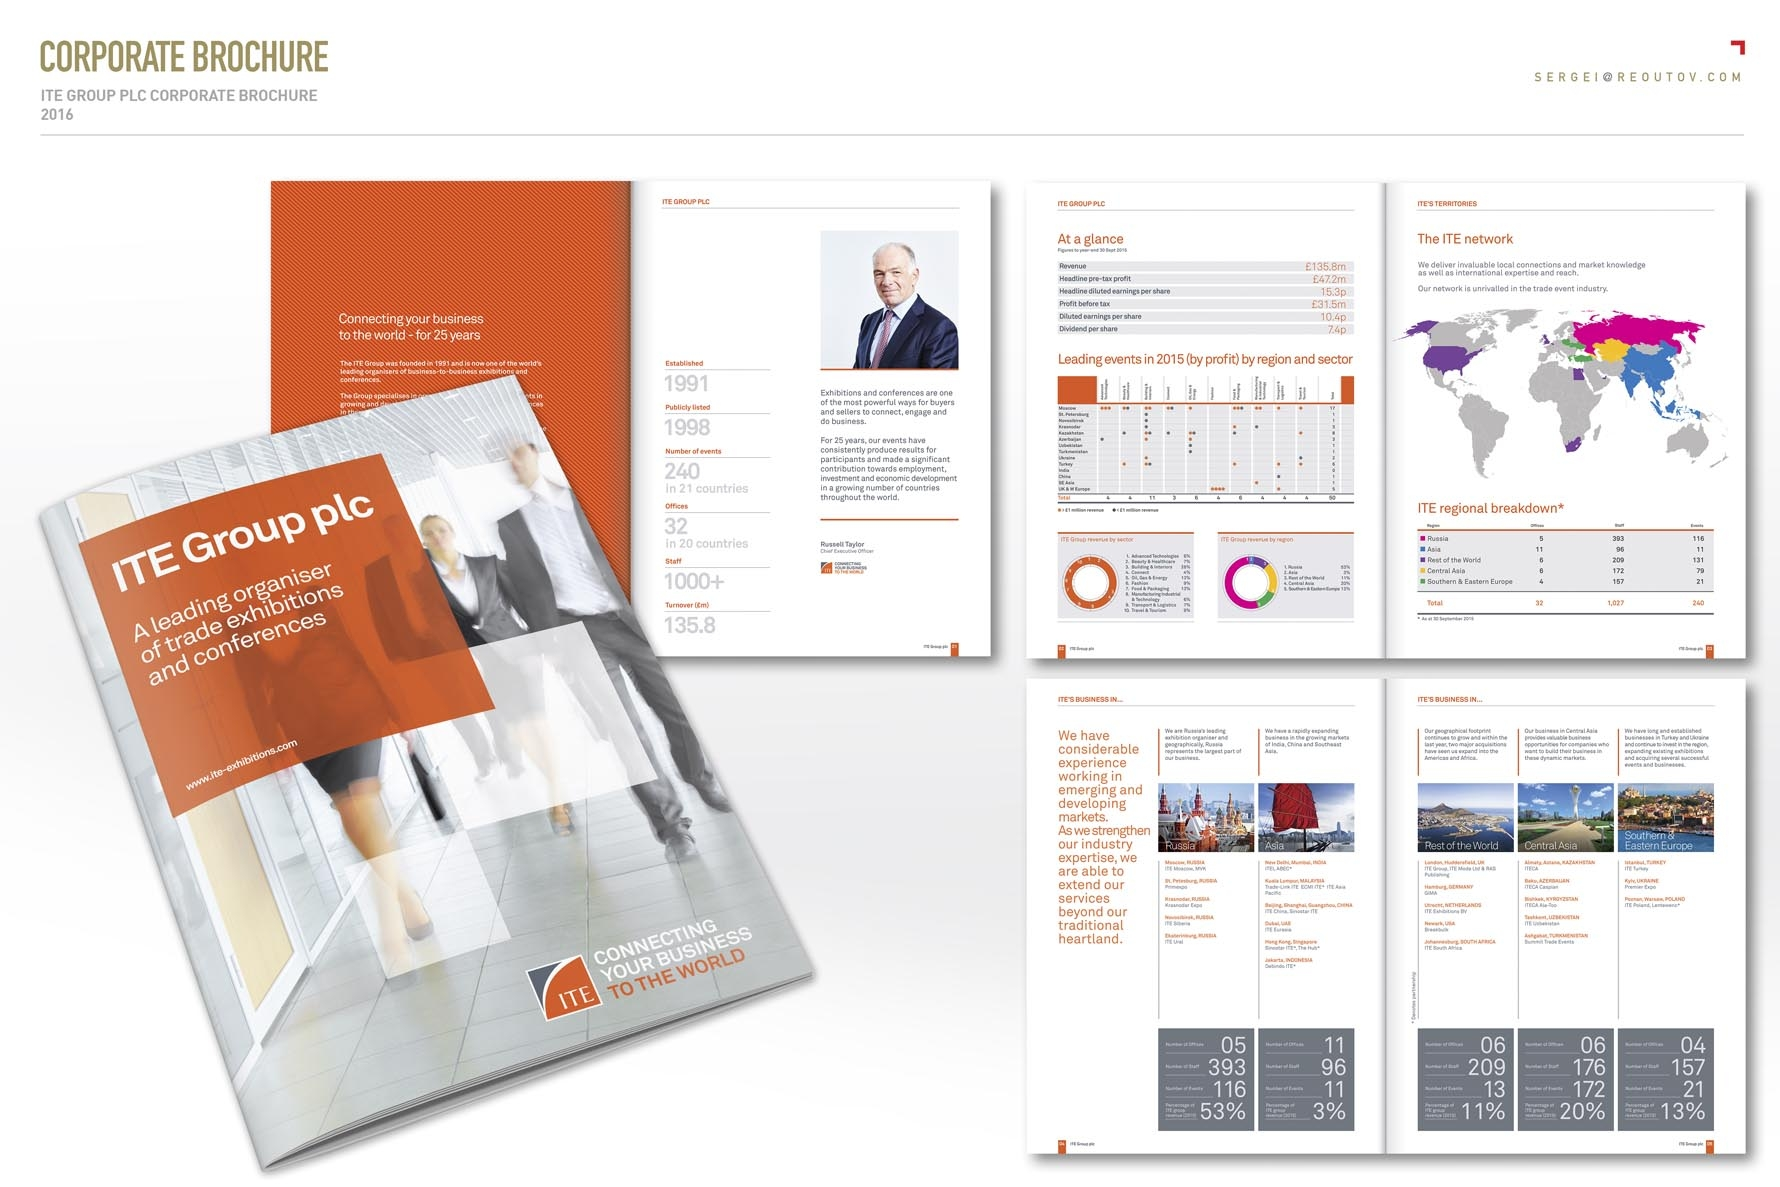 ITE Group Plc corporate brochure